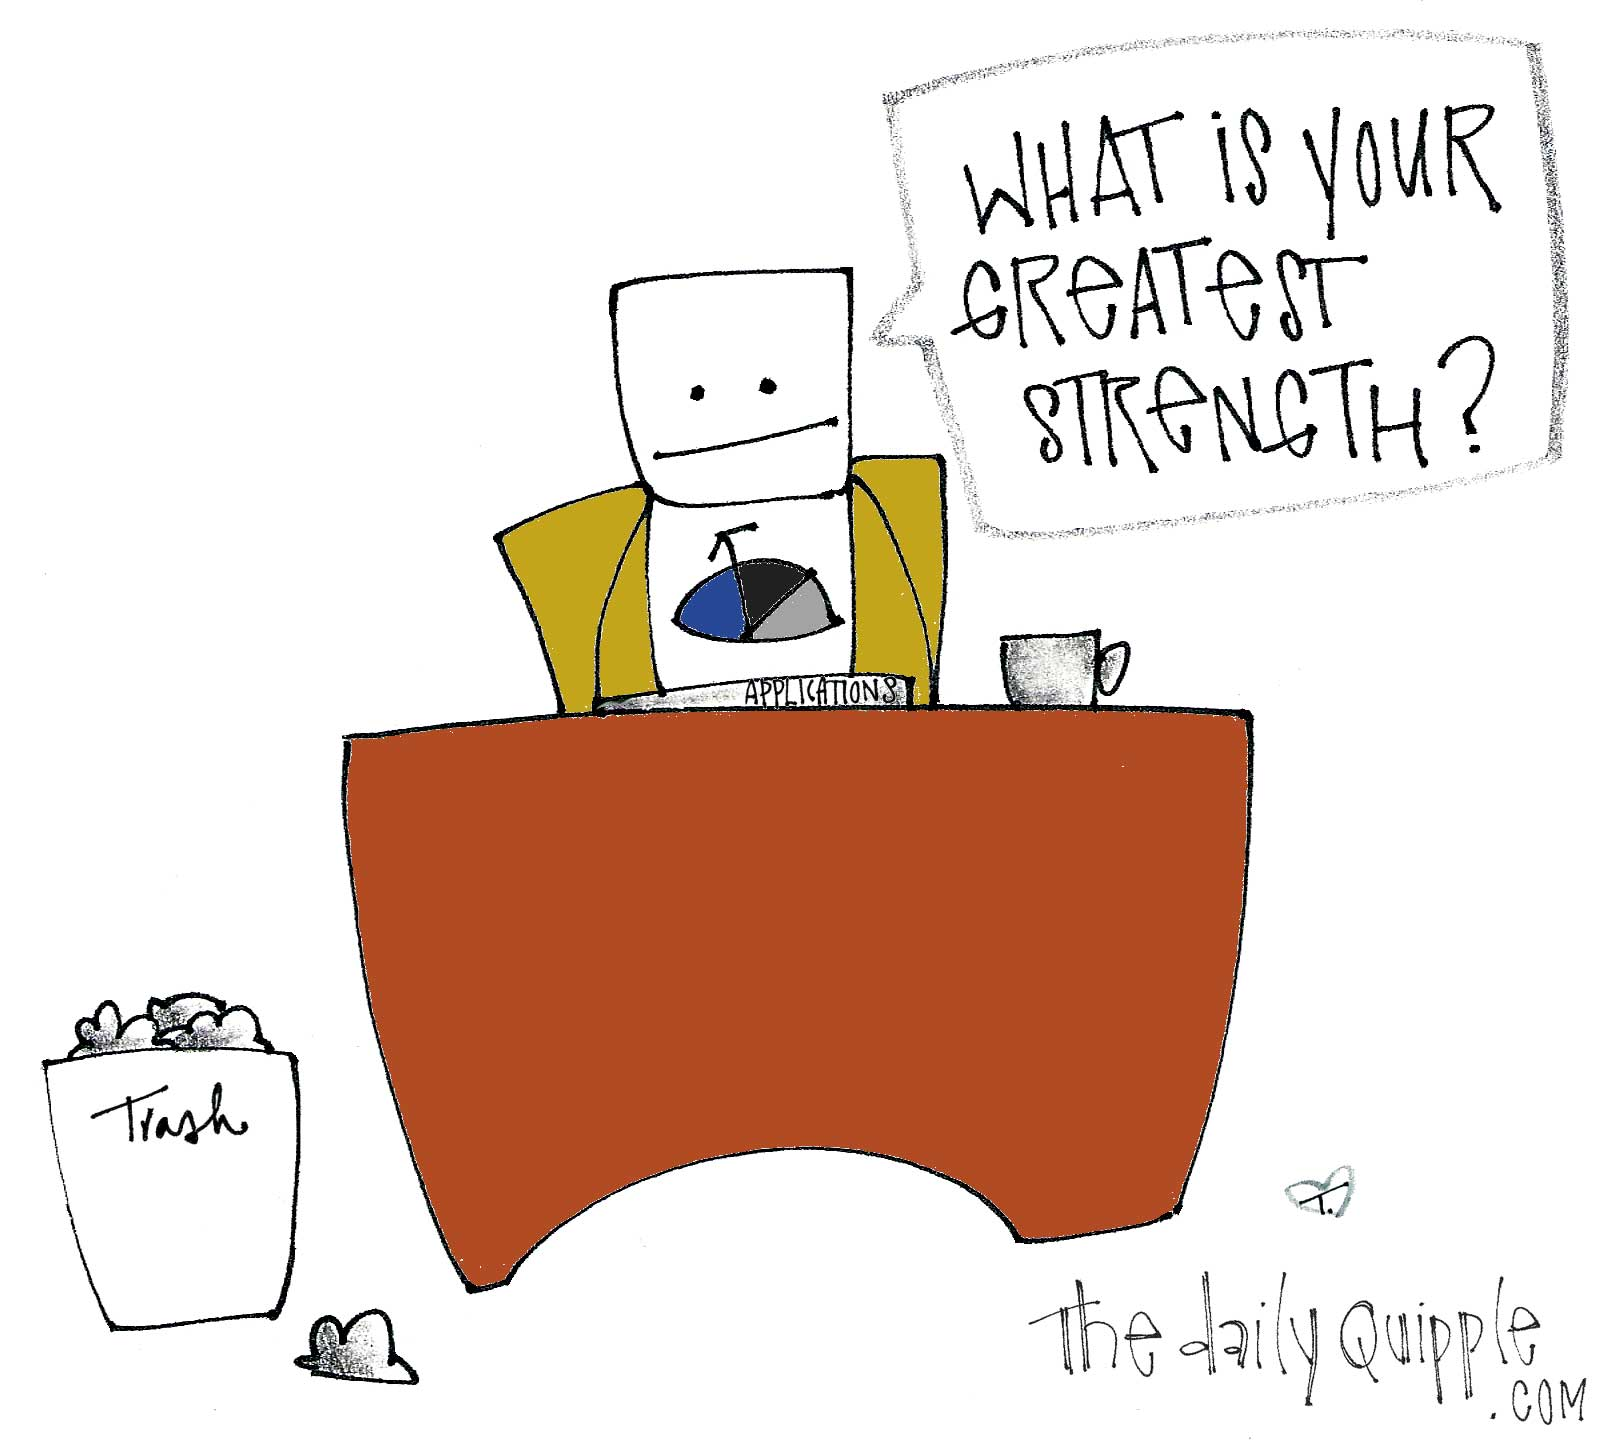 job application the daily quipple a robot asks what is your greatest strength